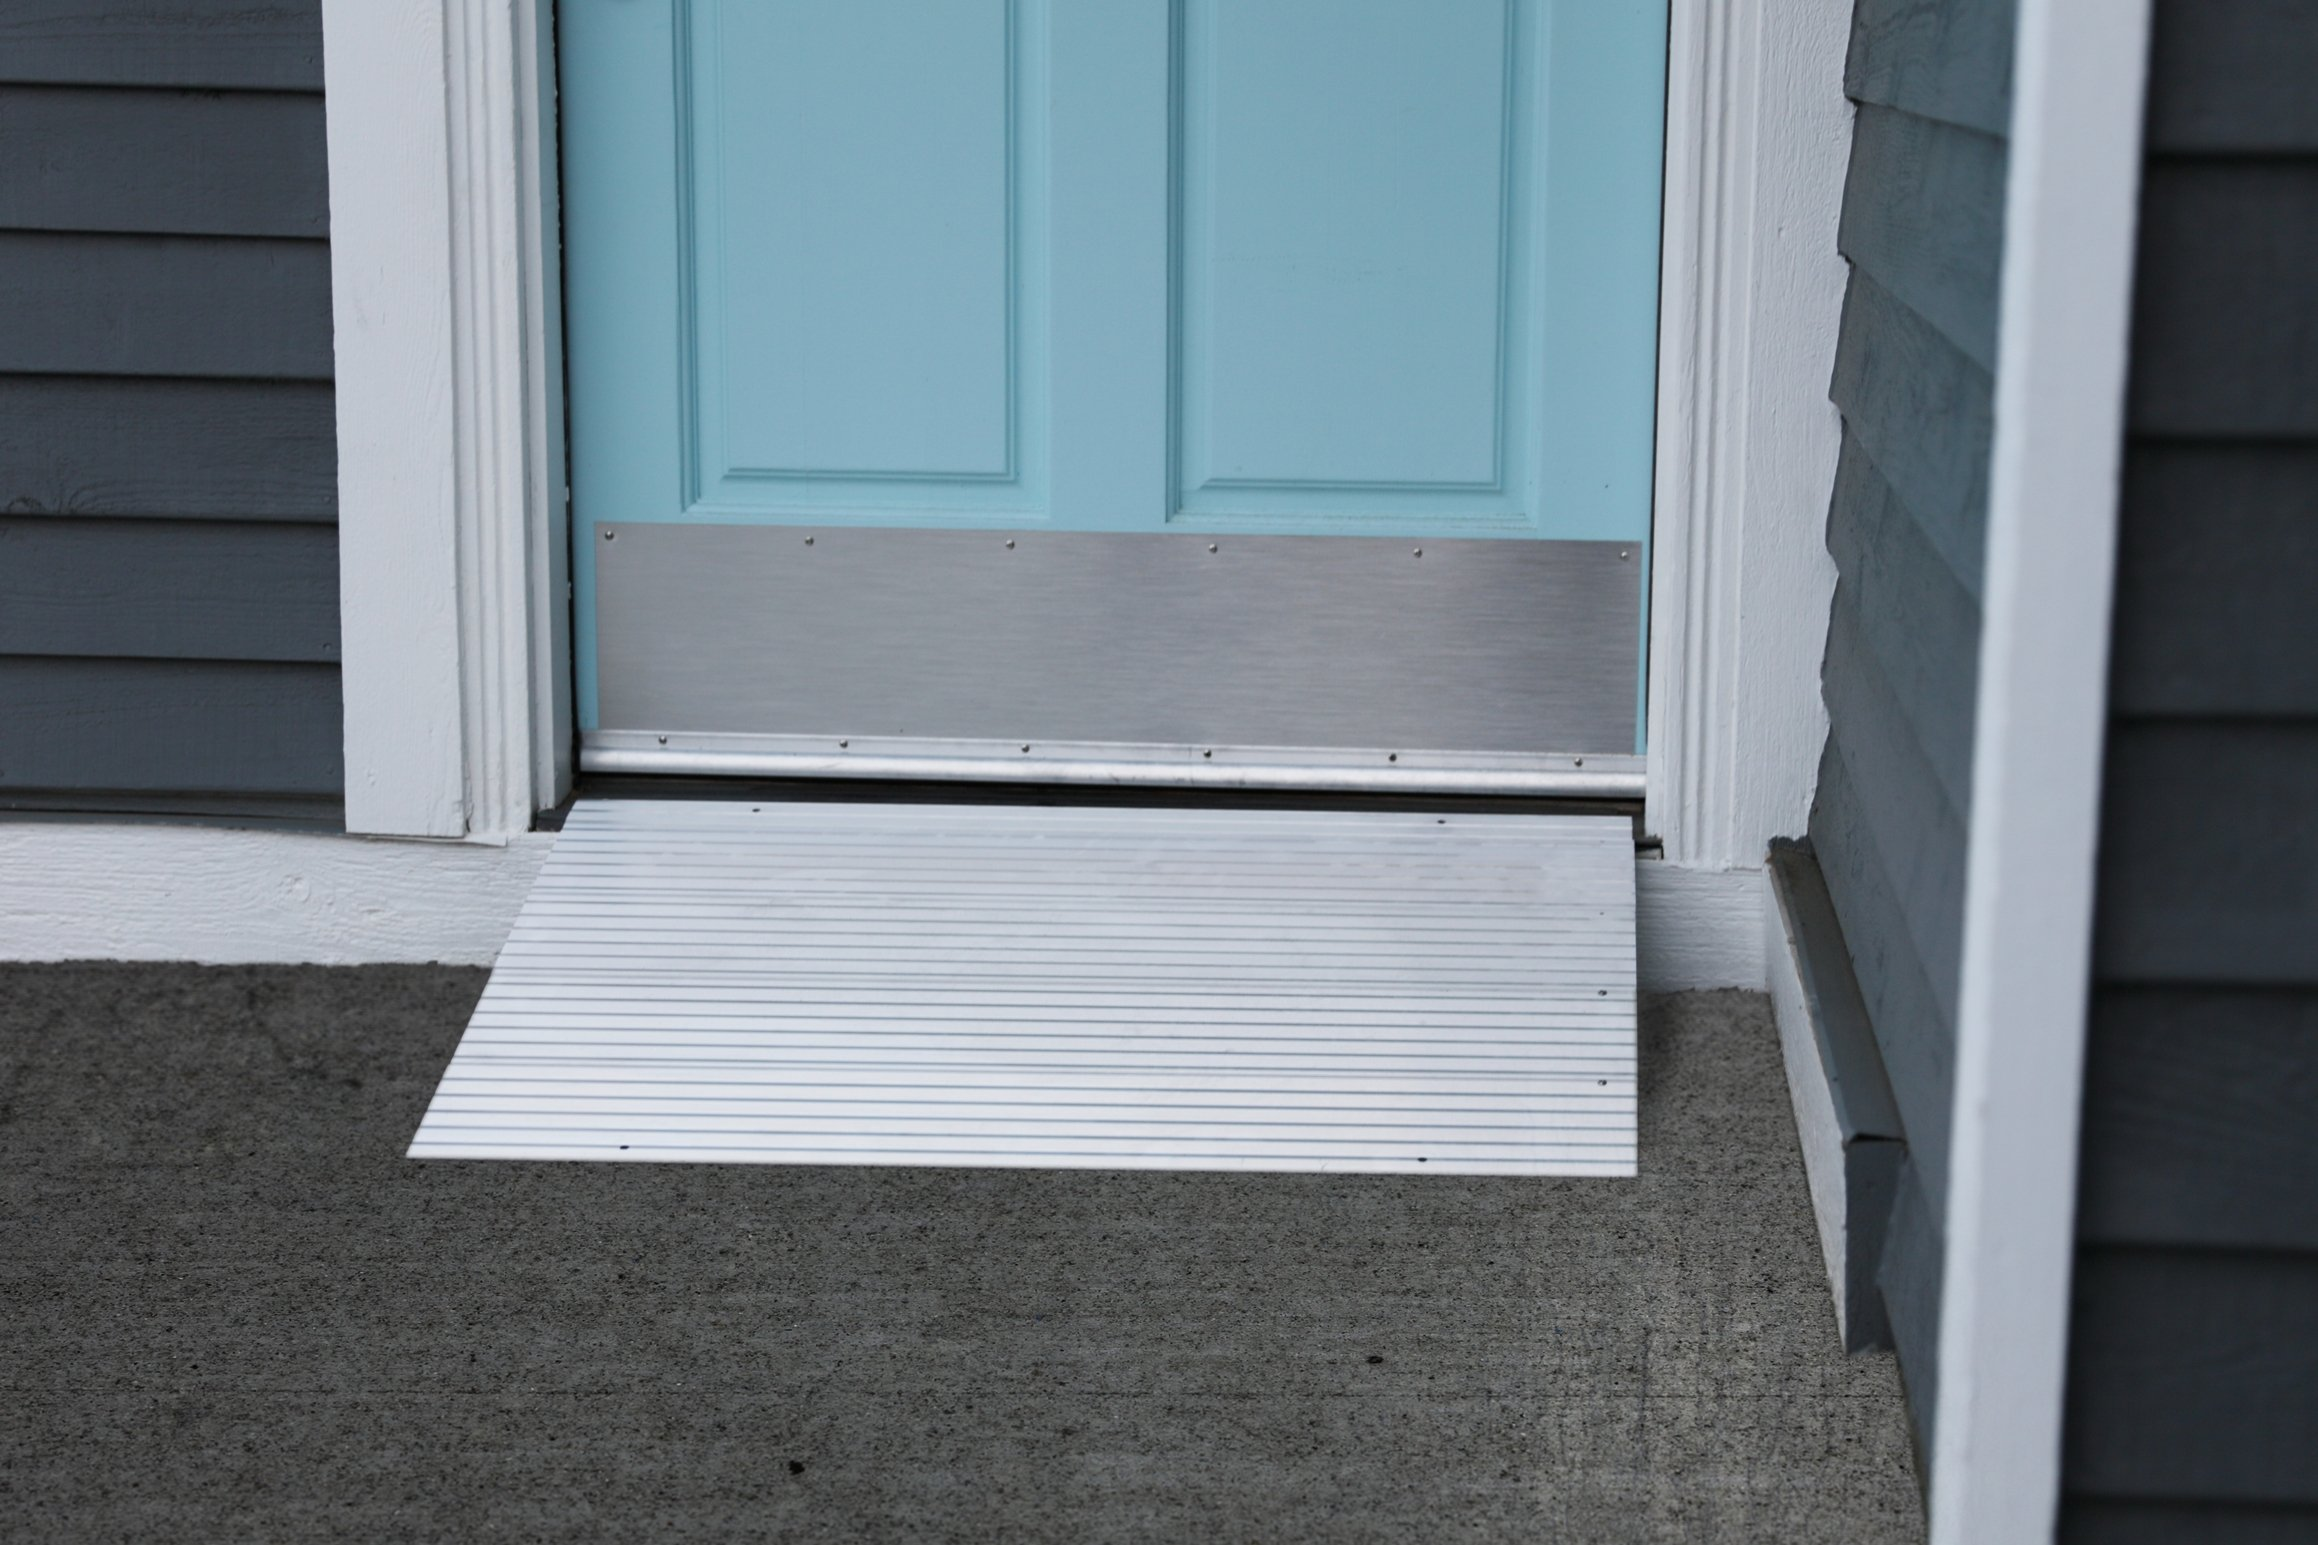 EZ-ACCESS Transitions Modular Entry Ramp 5 Inch, 21 Pounds